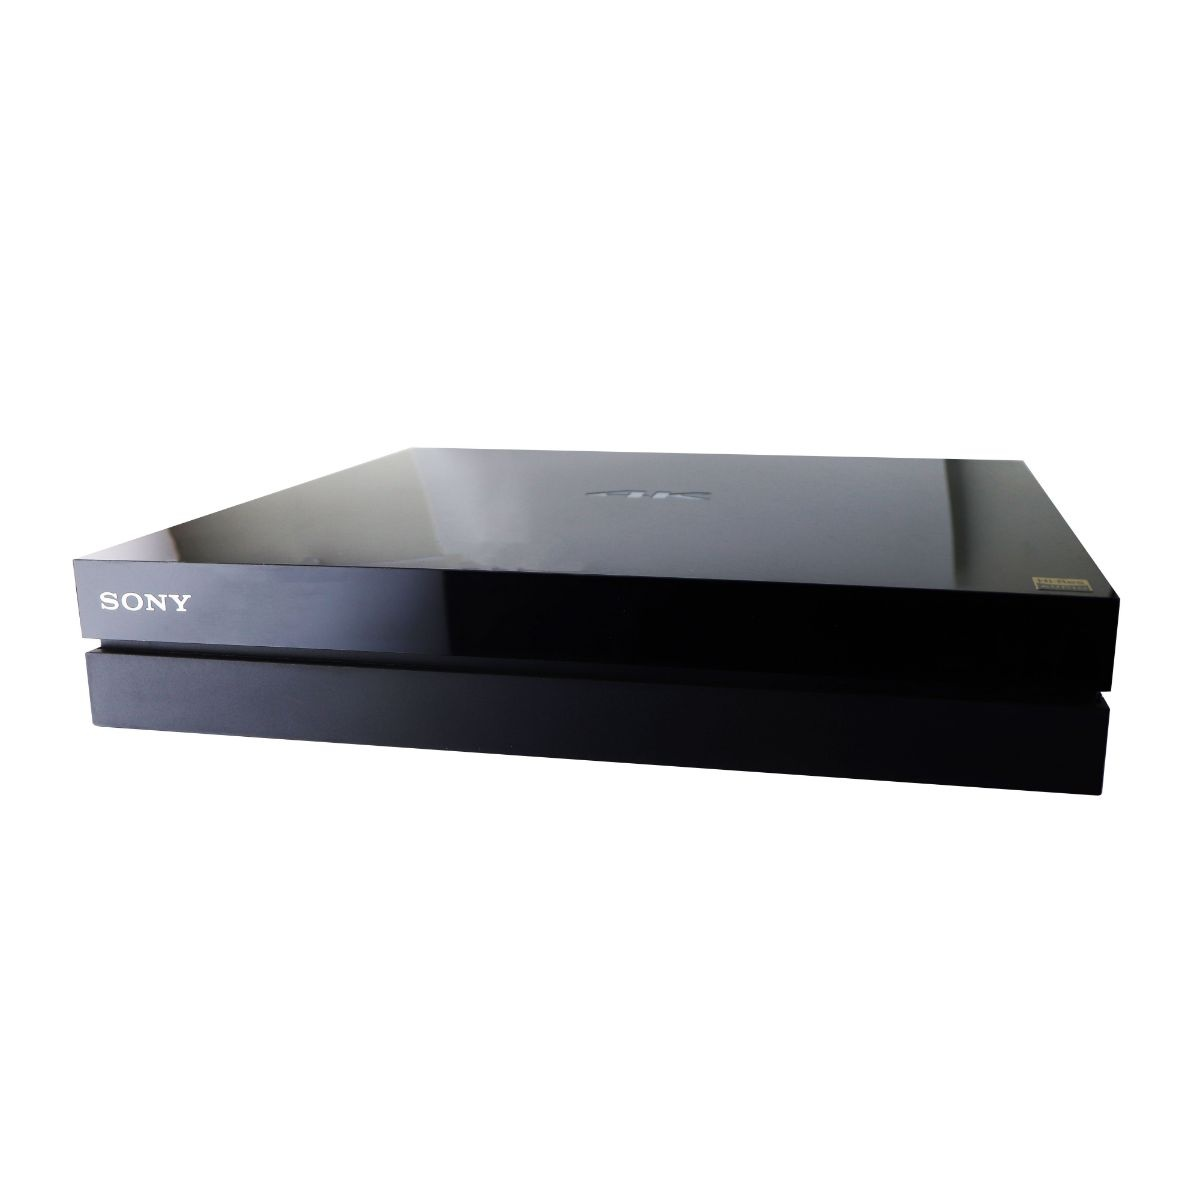 Sony FMPX10 4K Ultra HD Media Player